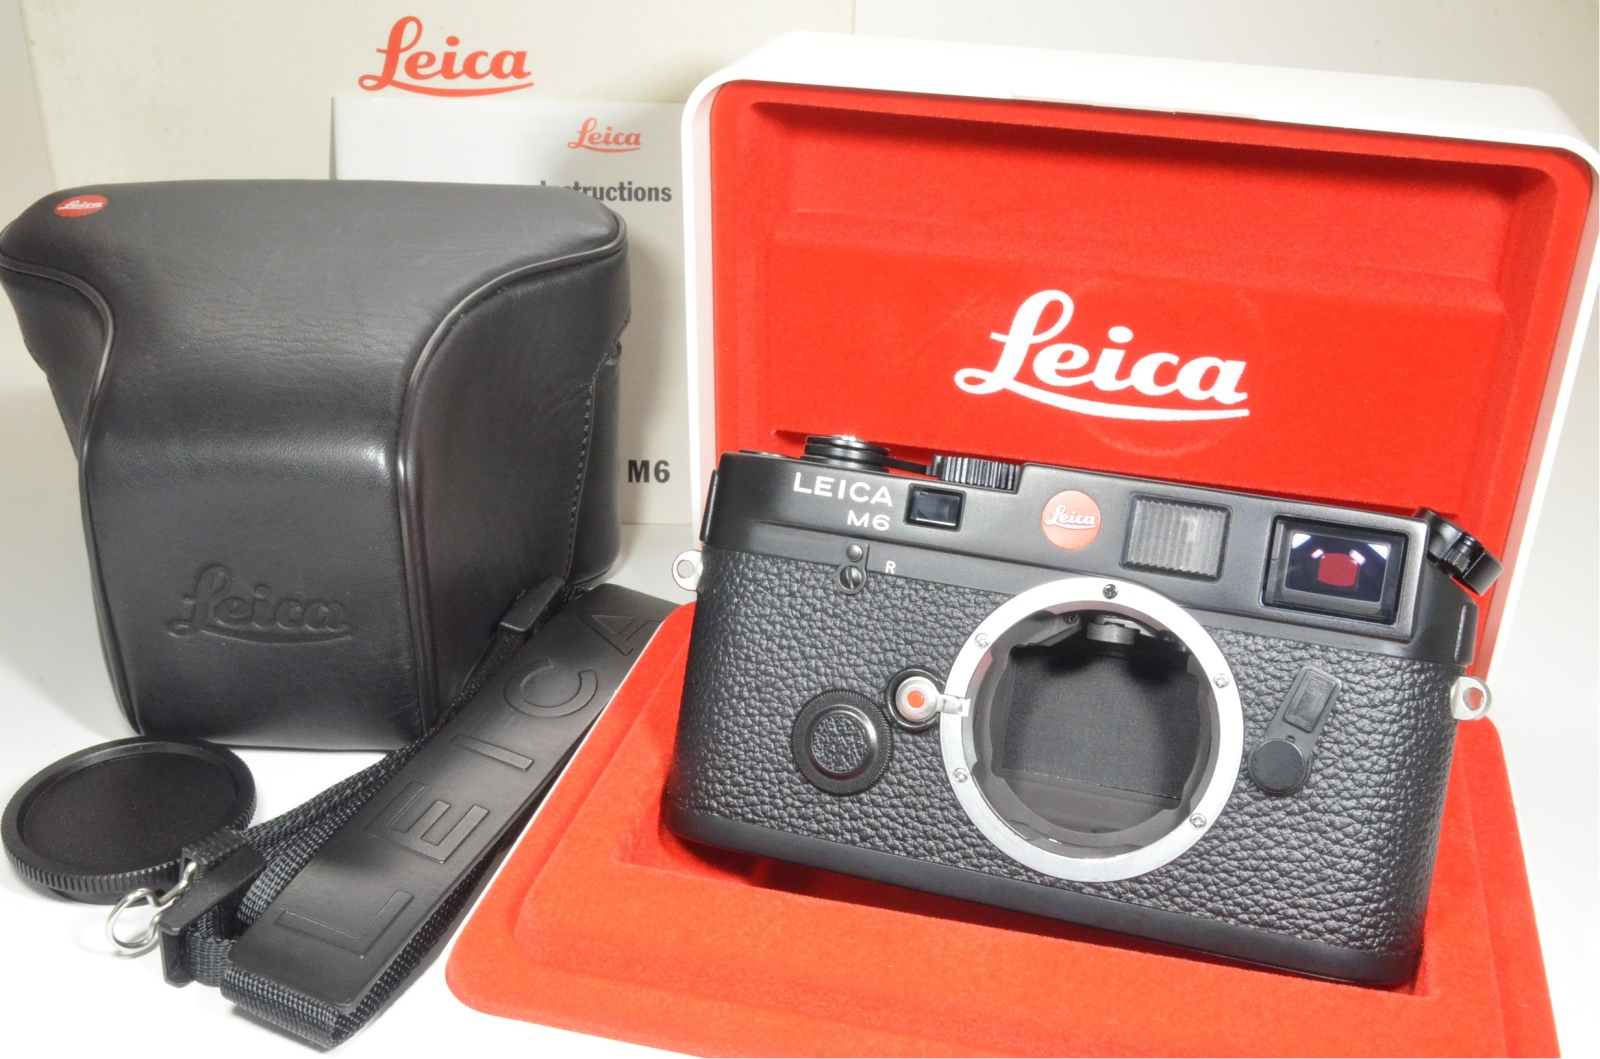 leica m6 0.72 black rangefinder serial no.1779265 year 1990 with case